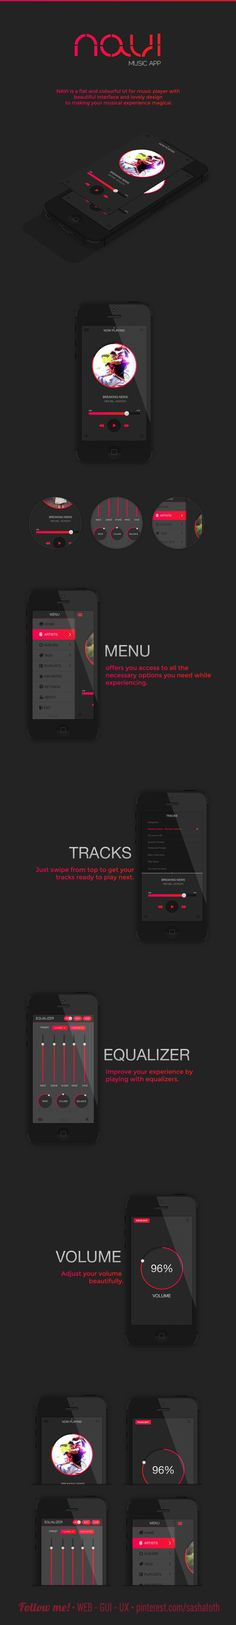 NAVI - Music App   NAVI is a flat and colourful UI for music player with  beautiful interface and lovely design  to making your musical experience magical.   Designer: Mansoor MJ